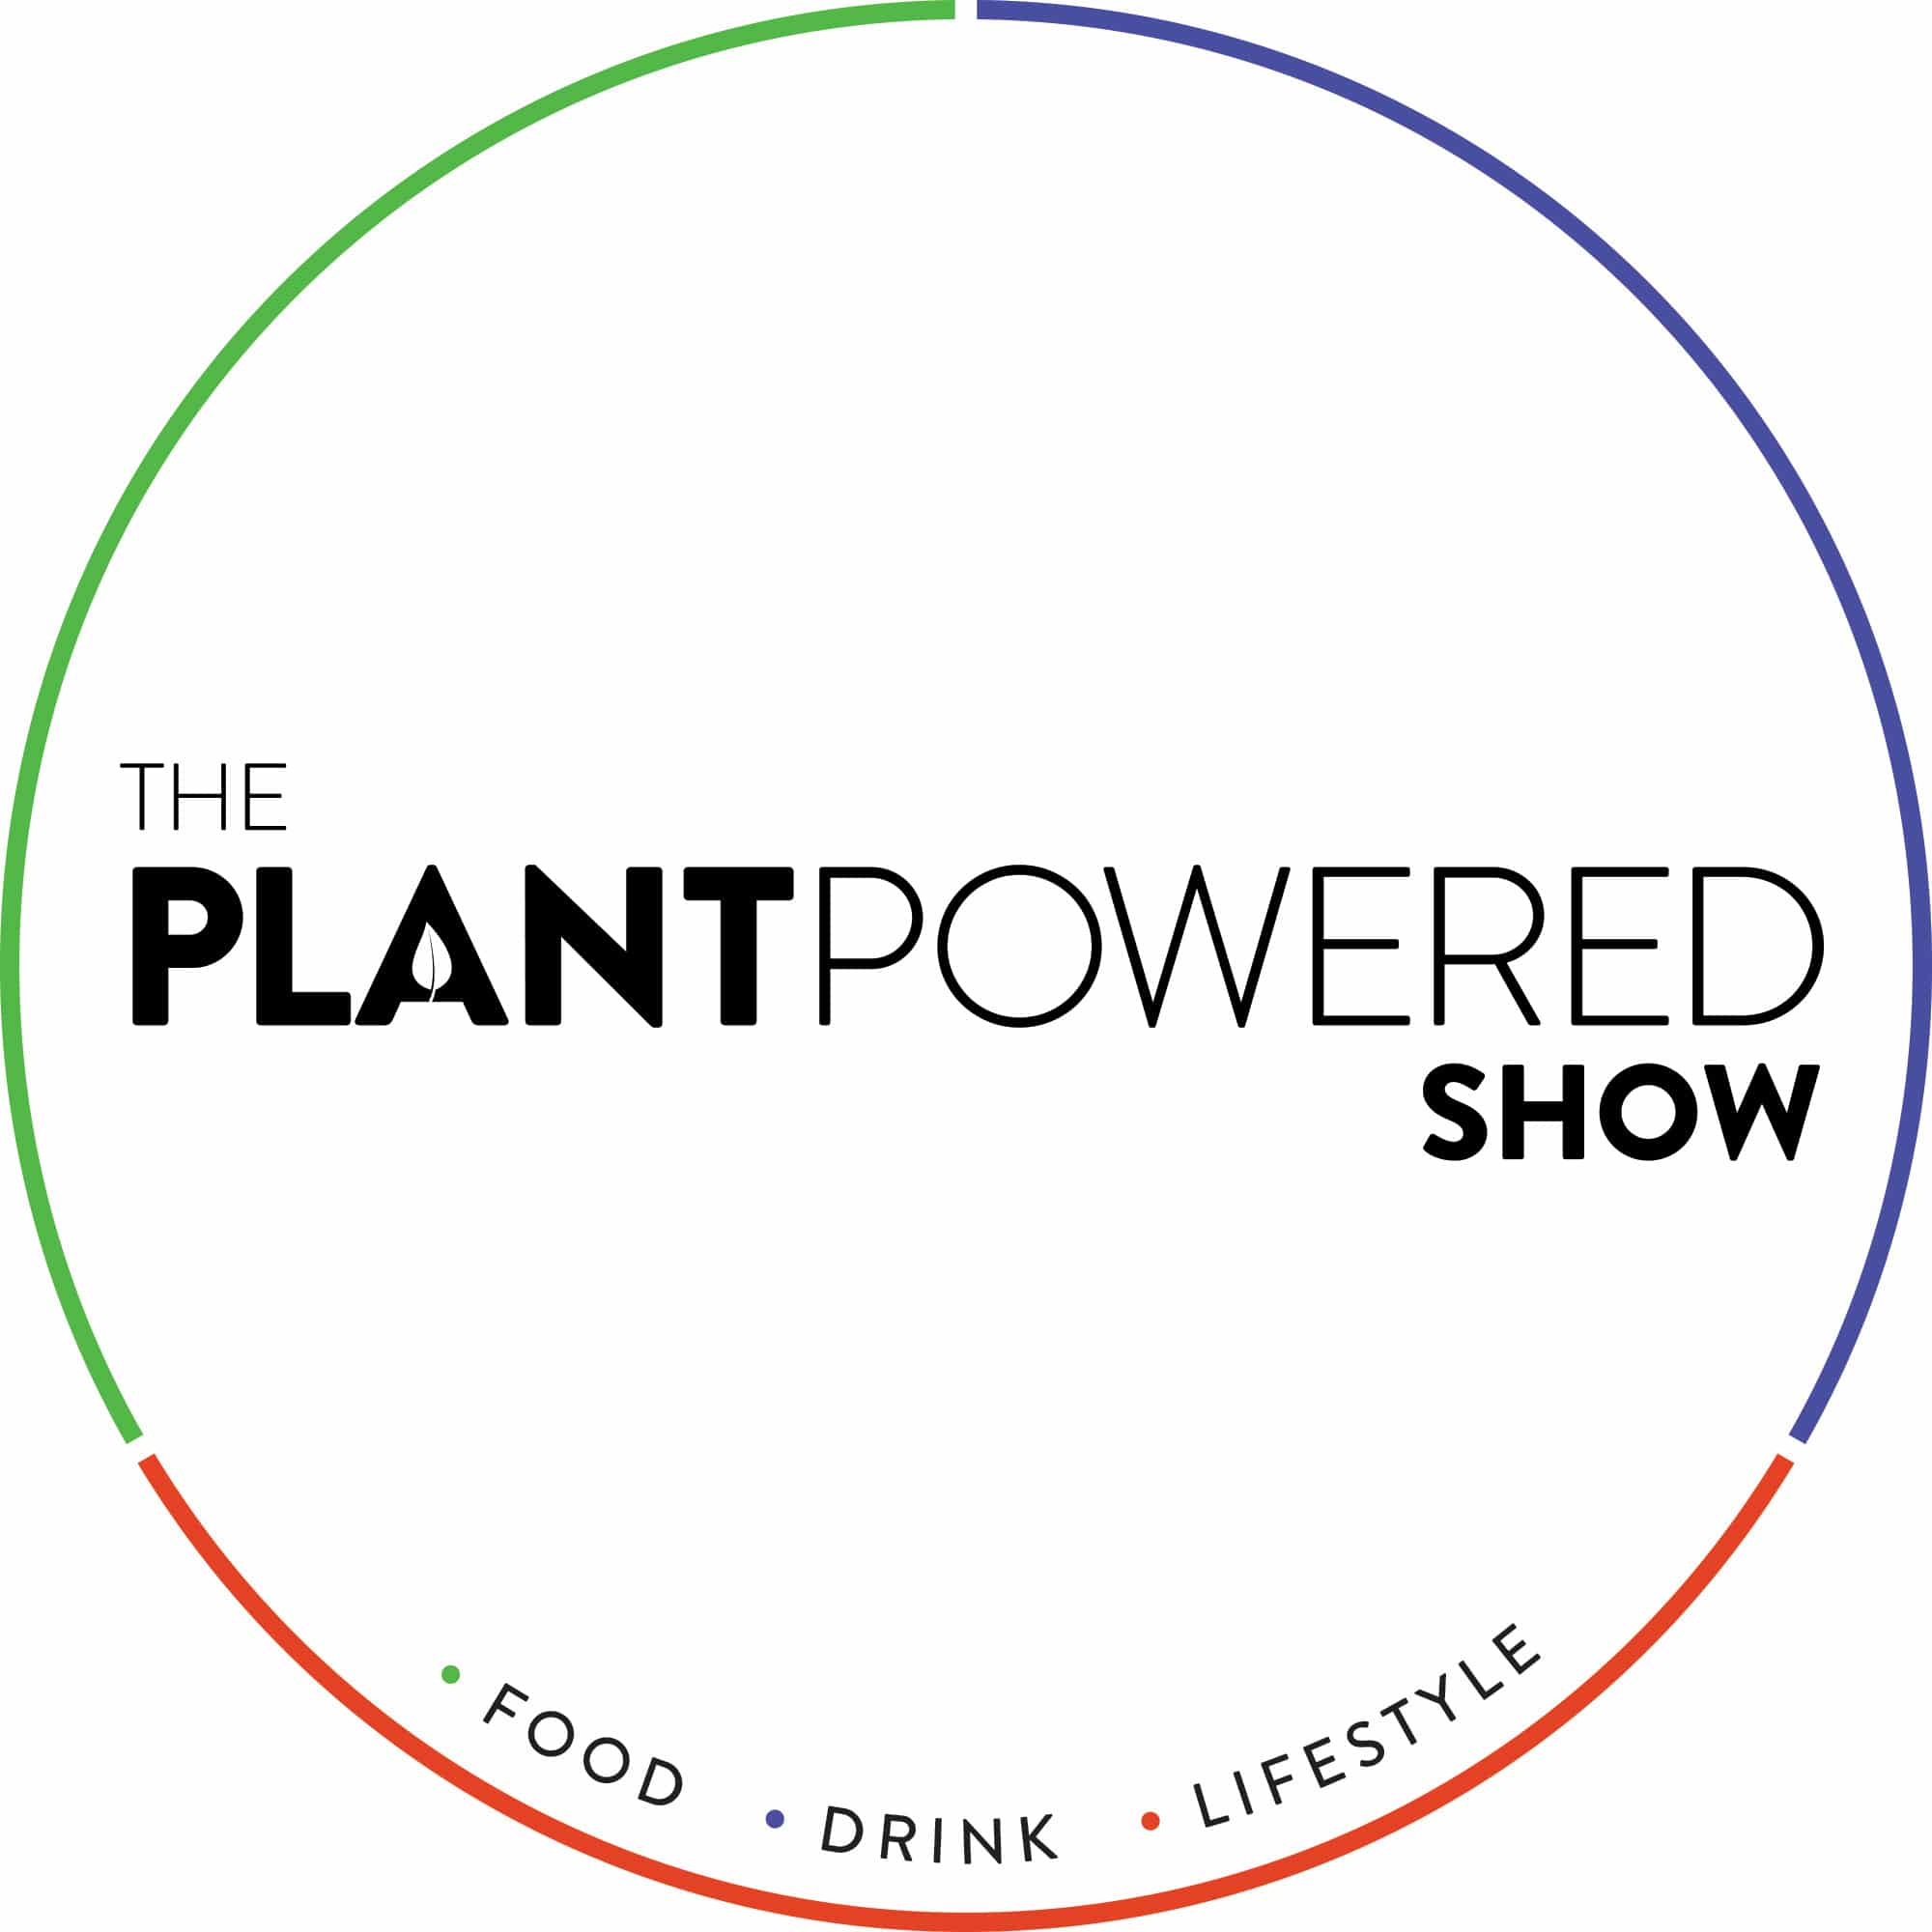 The Plant Powered Show